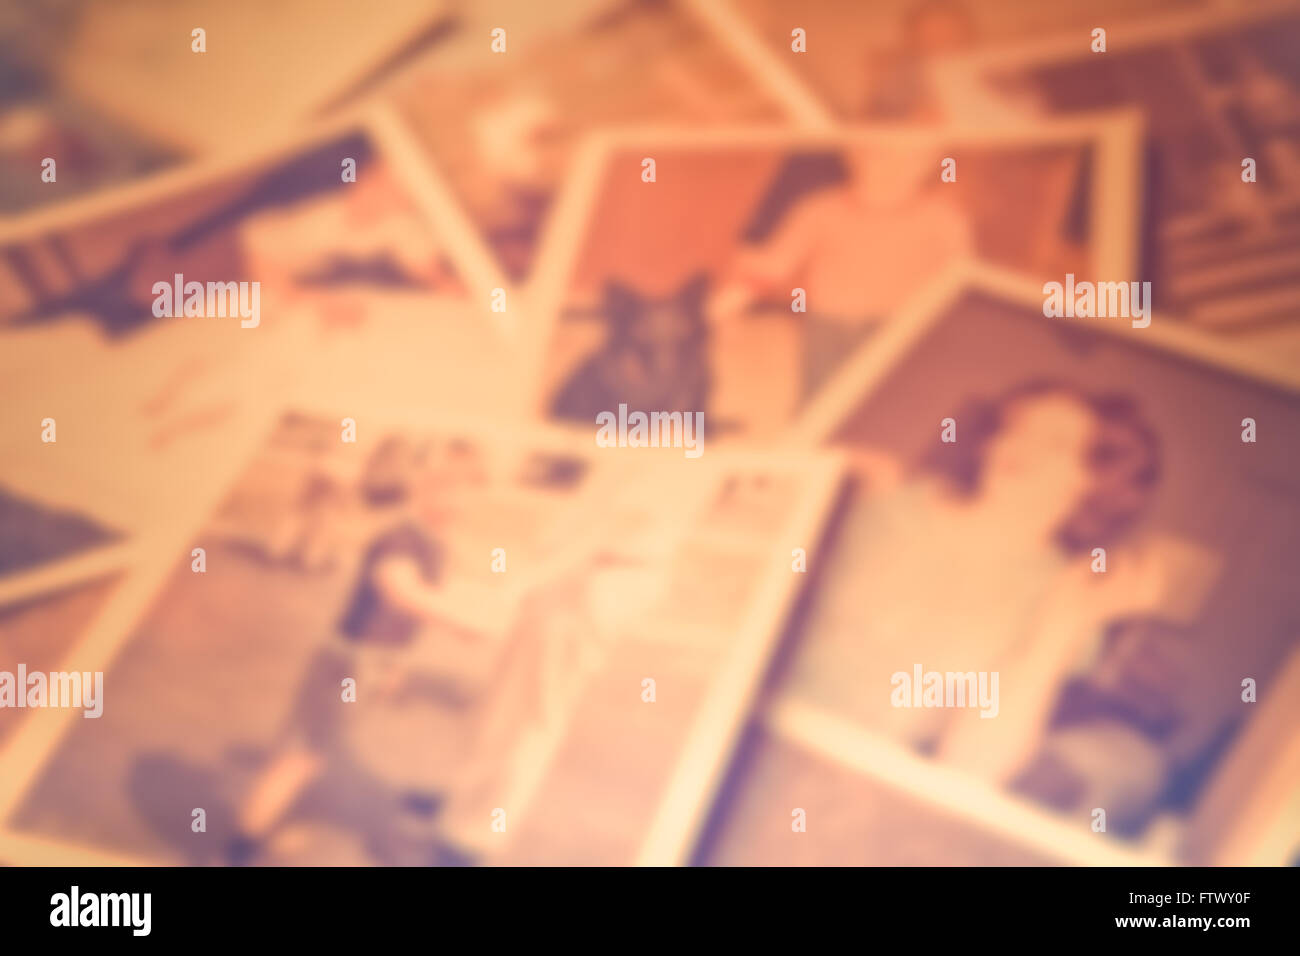 Defocused blur of scattered old family photographs against cork board - Stock Image